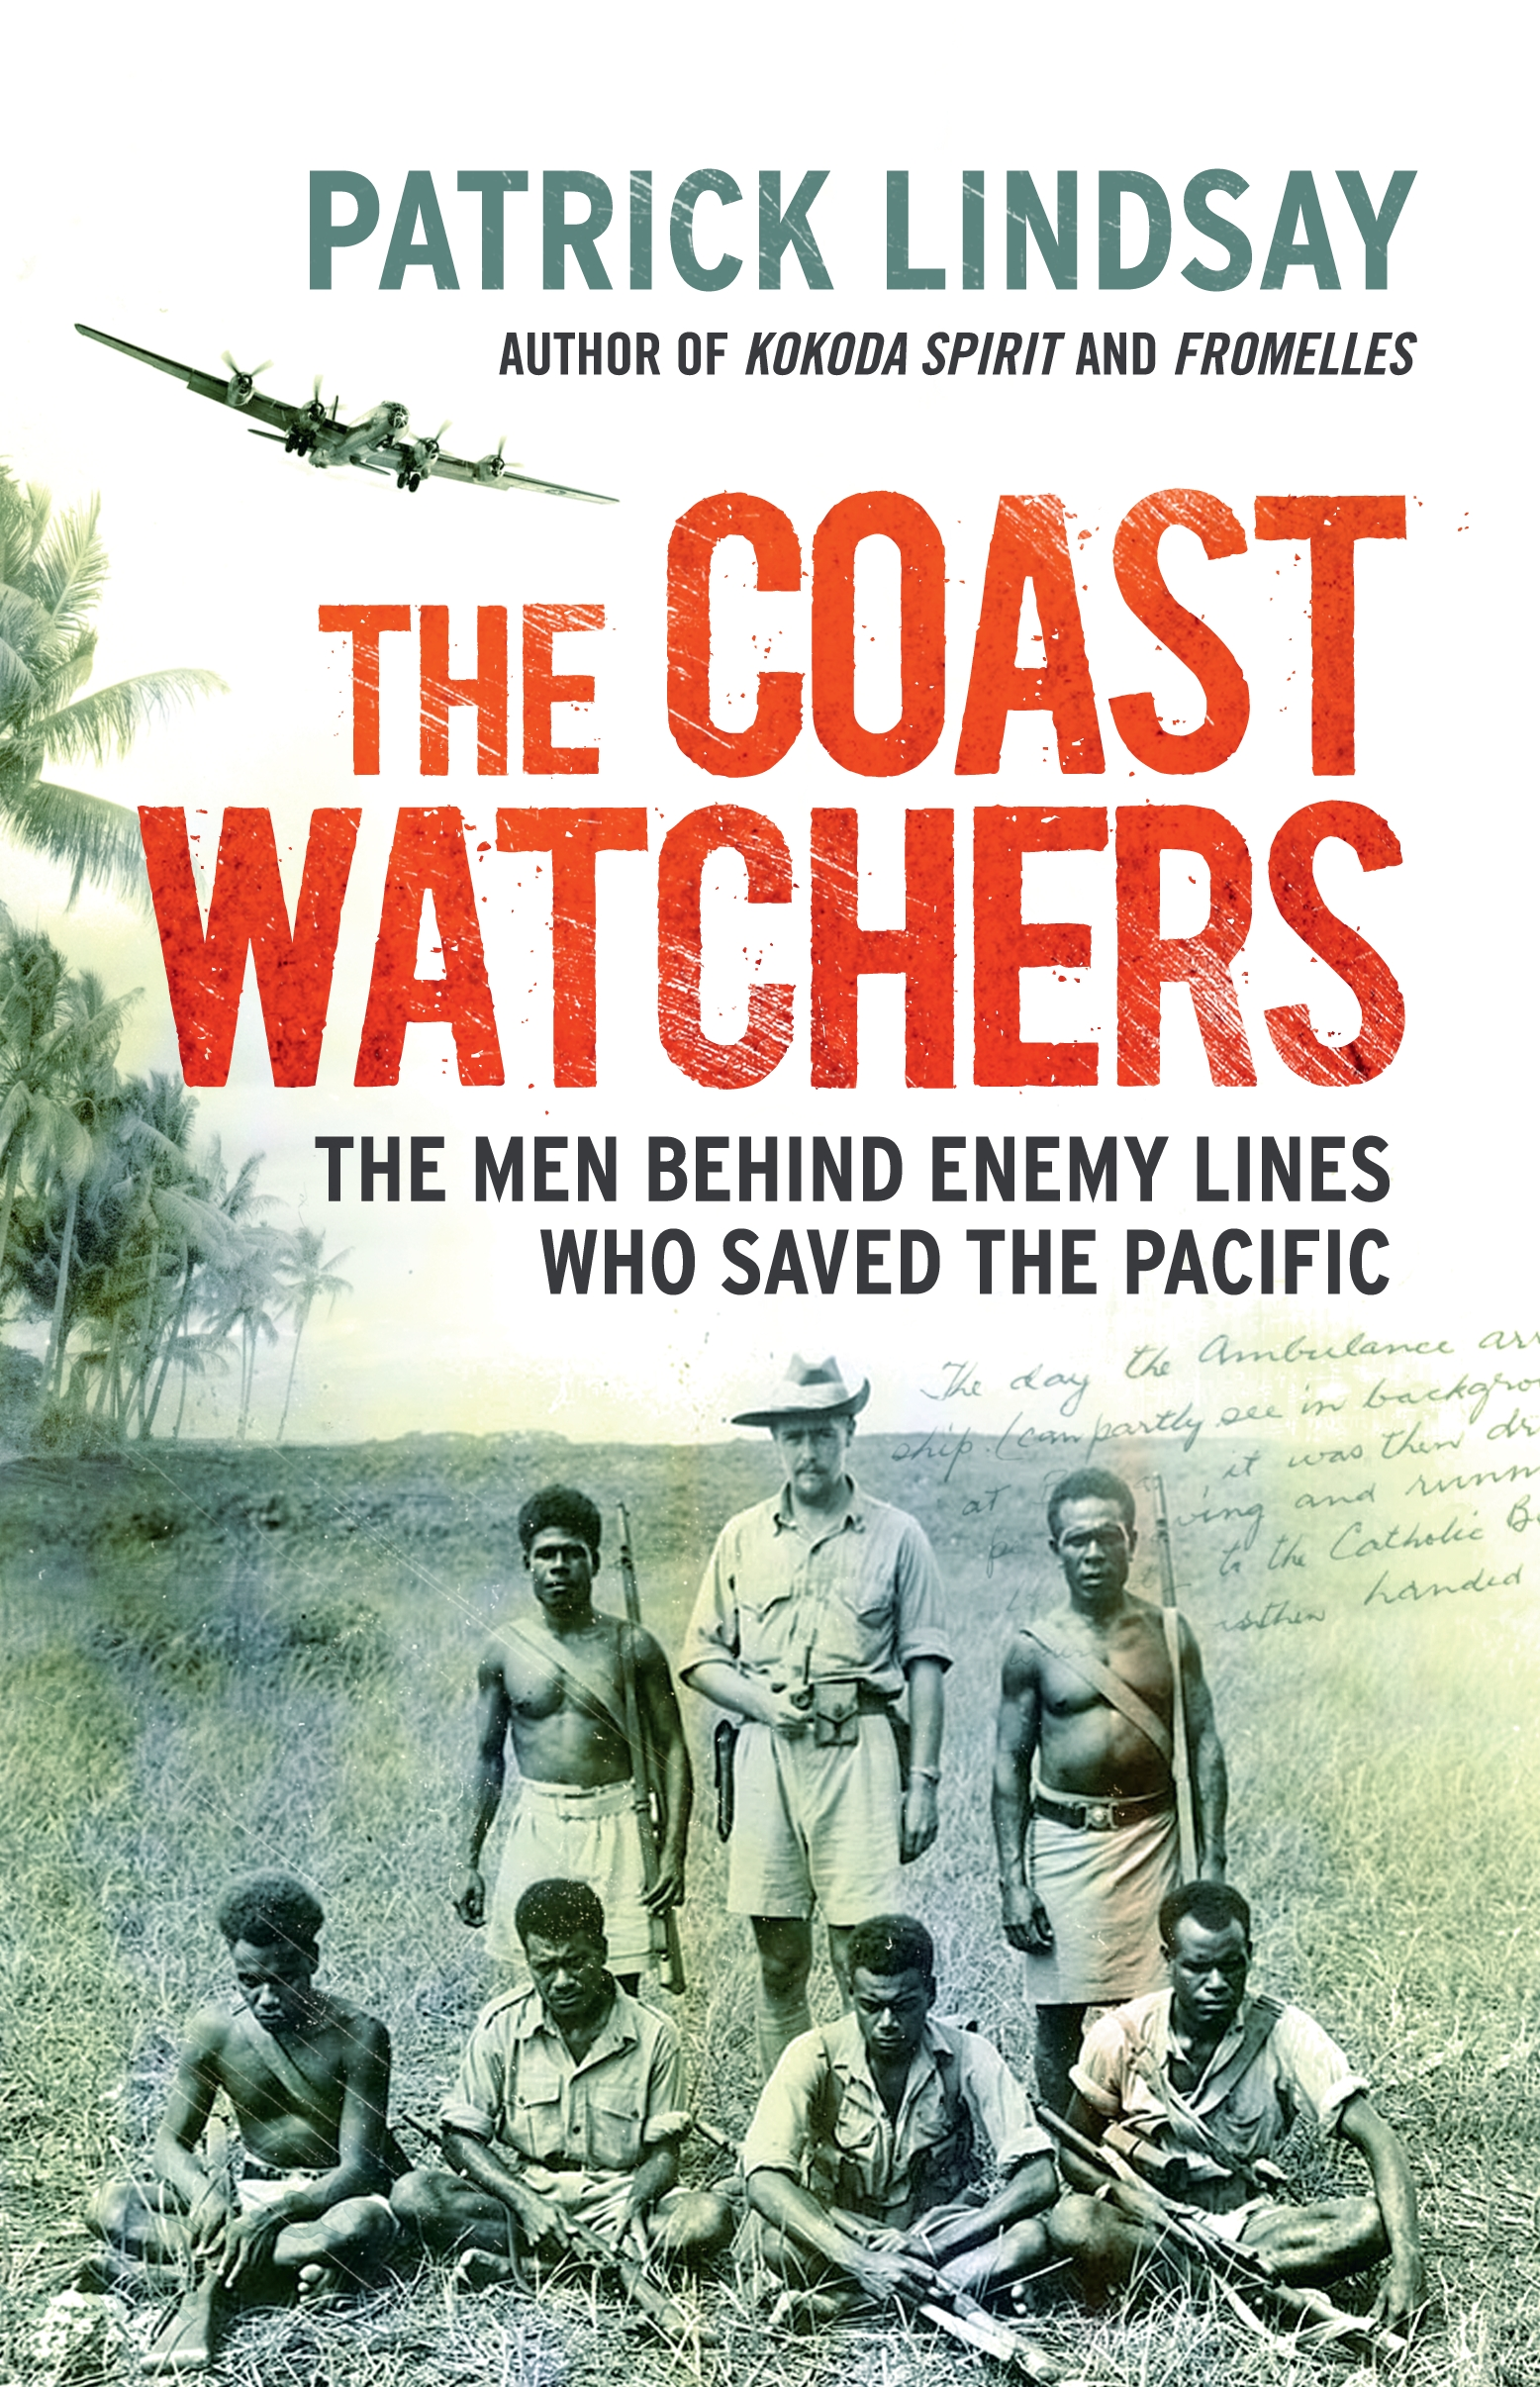 The Coast Watchers by Patrick Lindsay - Penguin Books New